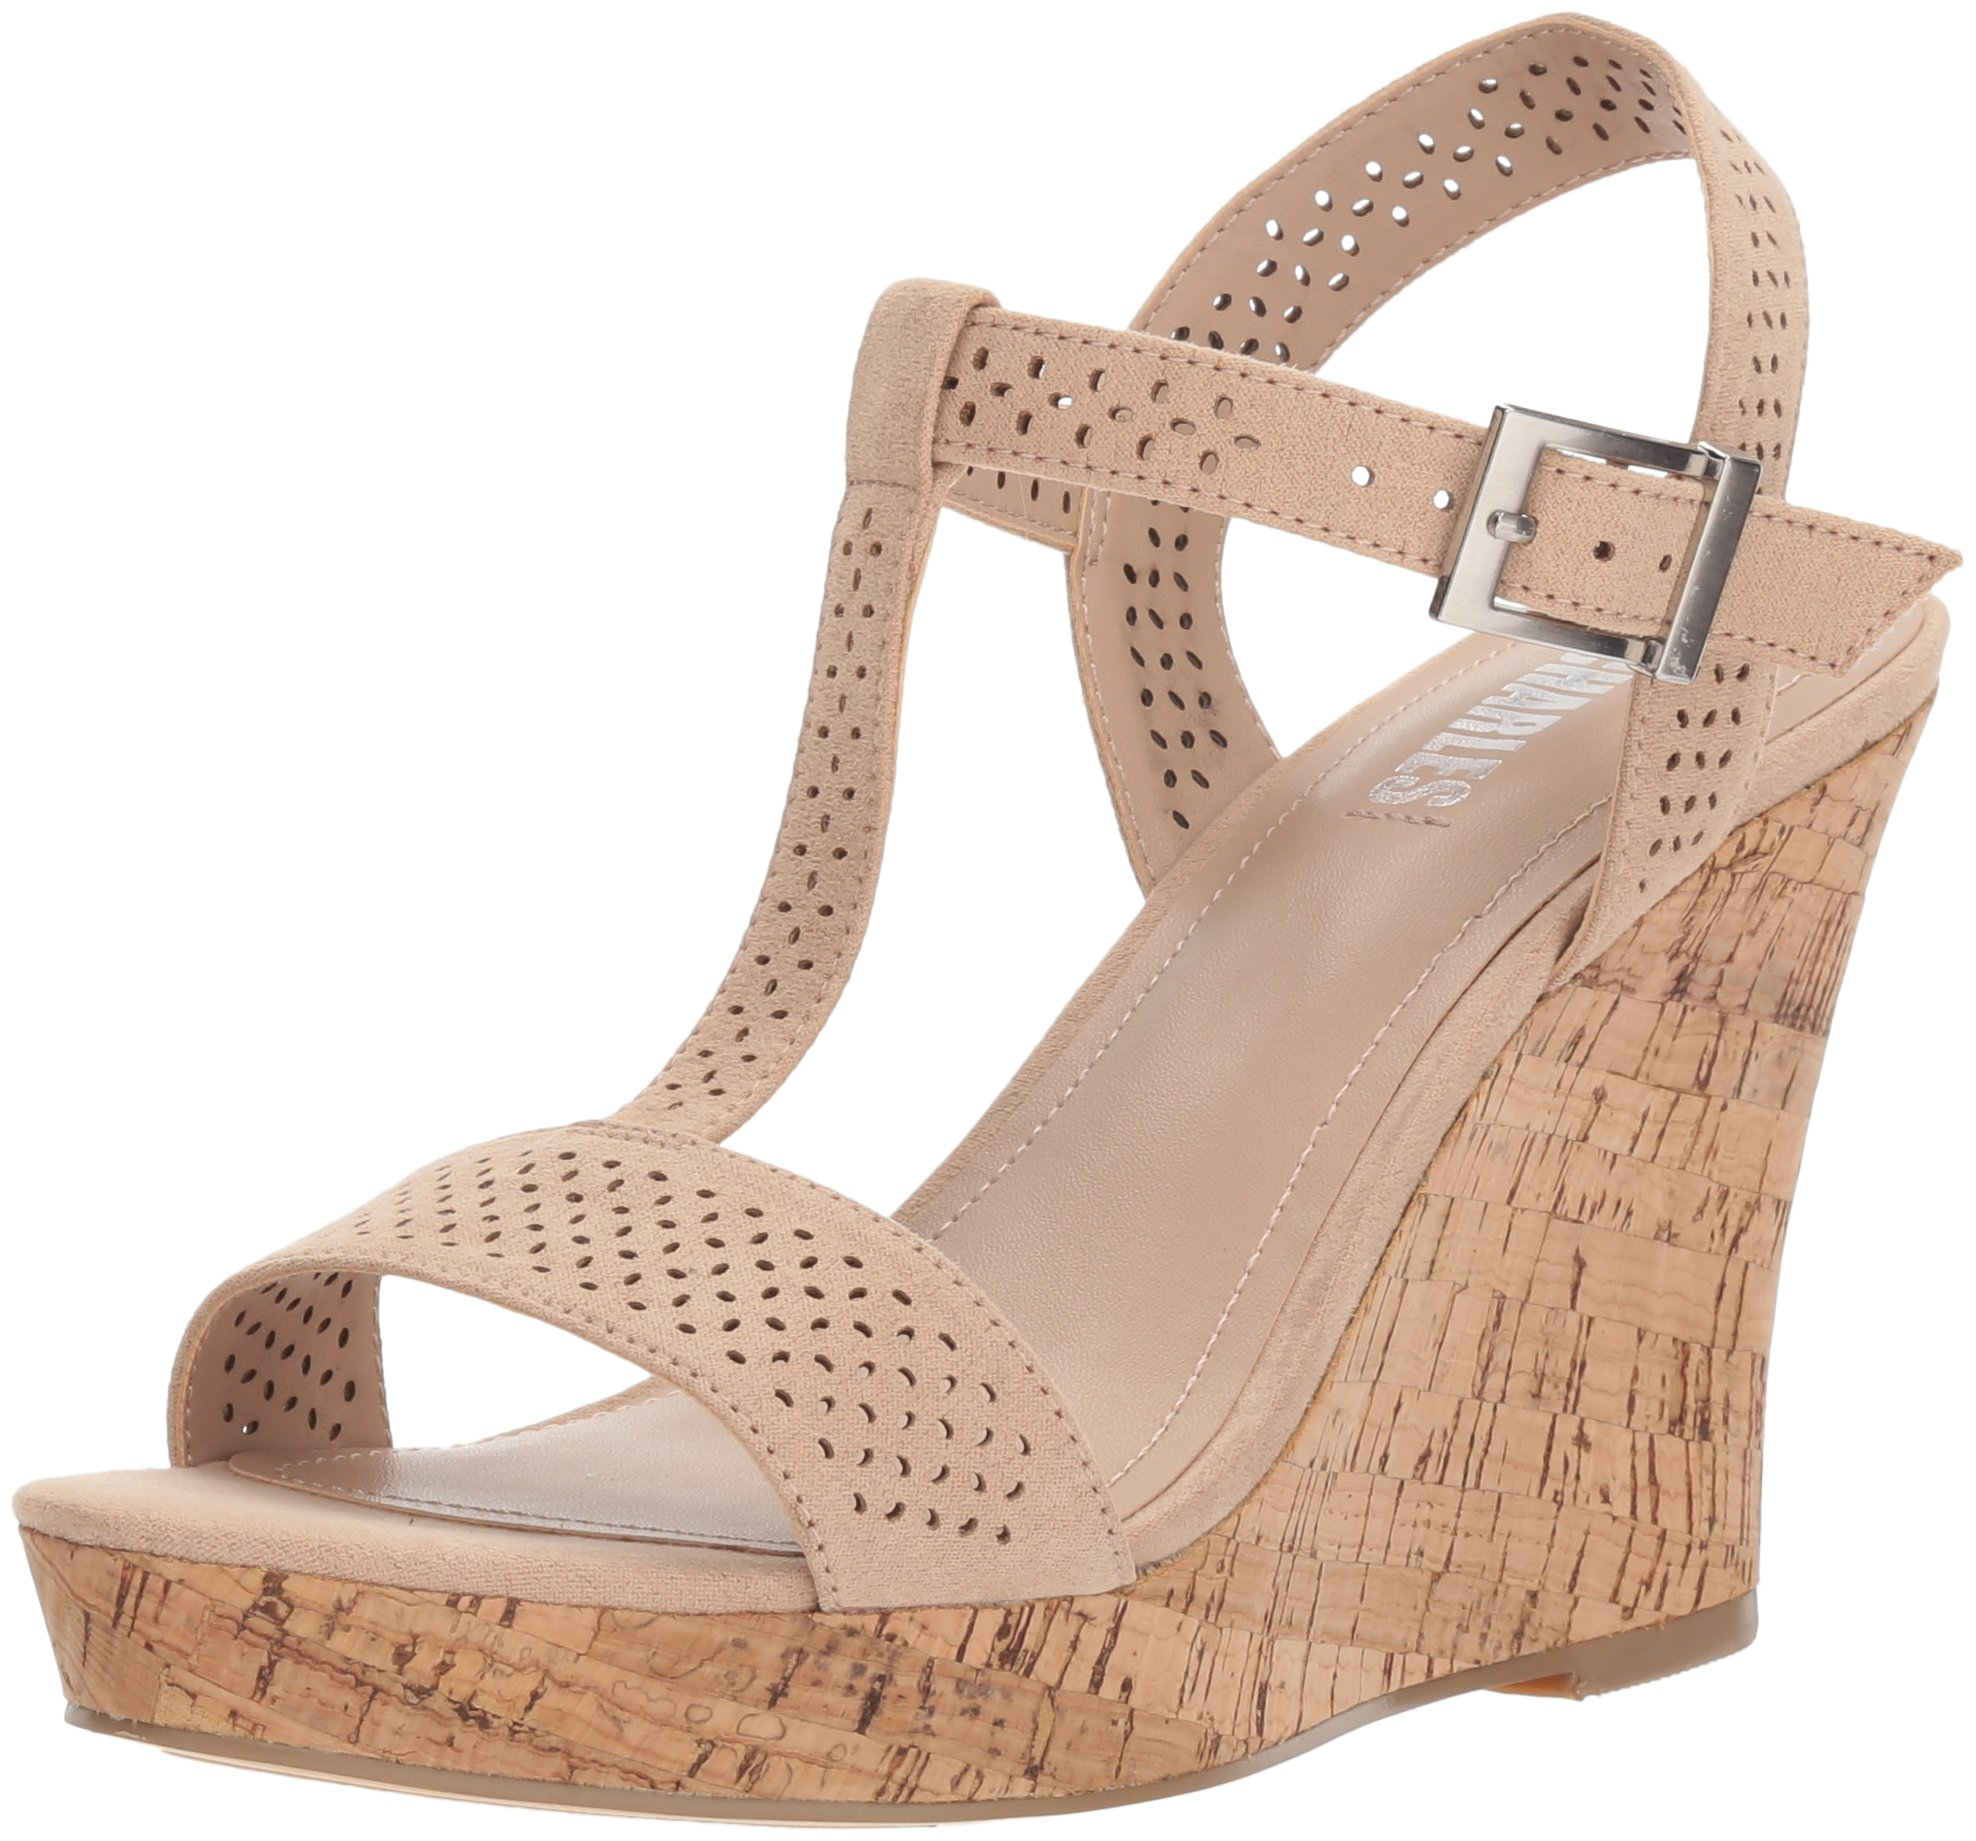 Style by Charles David Women's Link Wedge Sandal, Nude, 8.5 M US